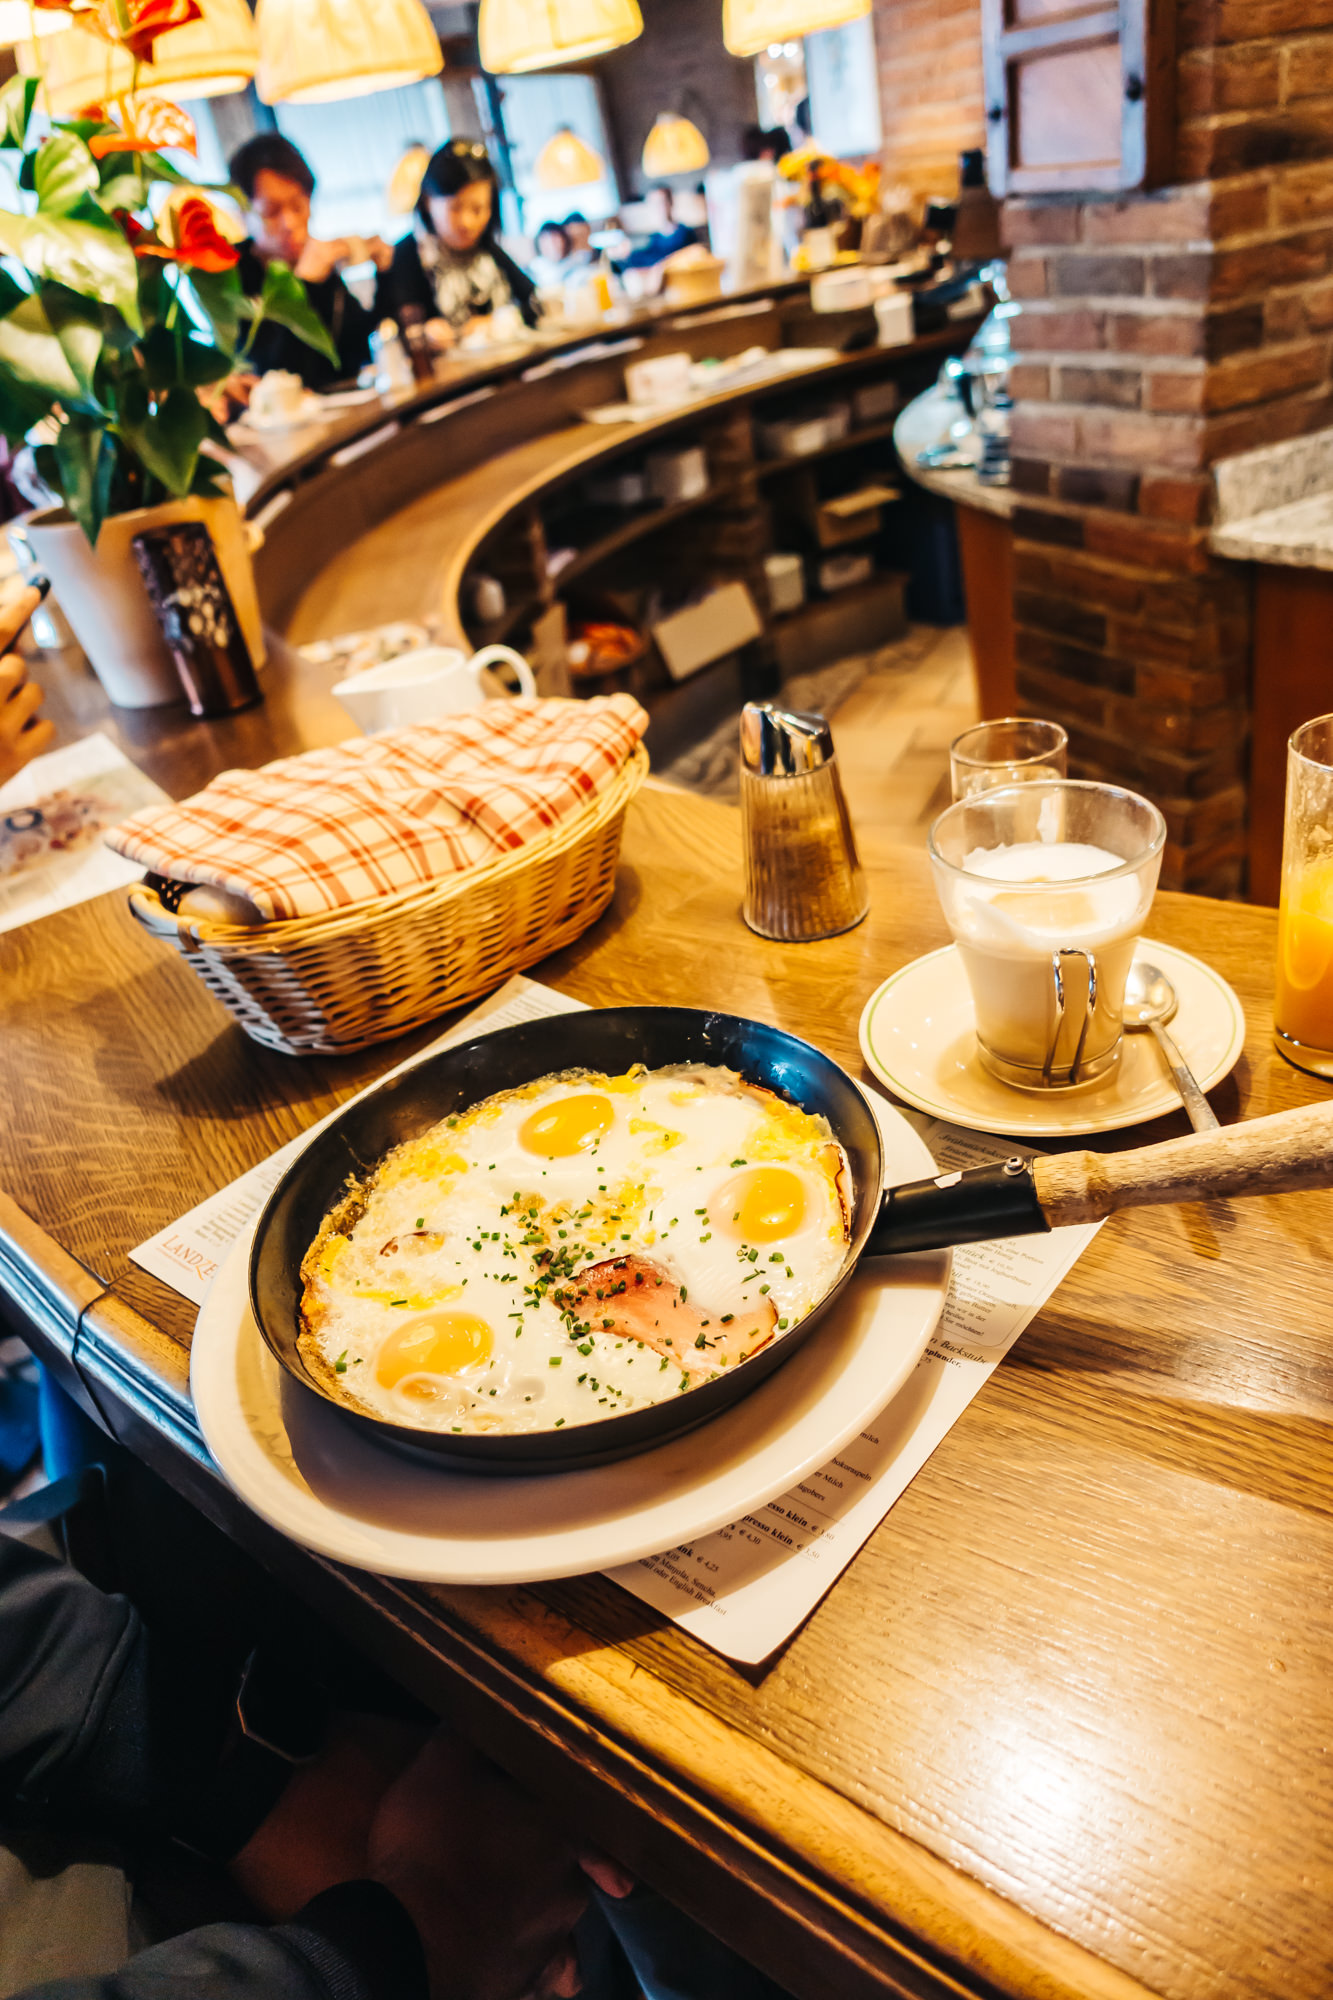 The egg and bacon skillet at Landzeit